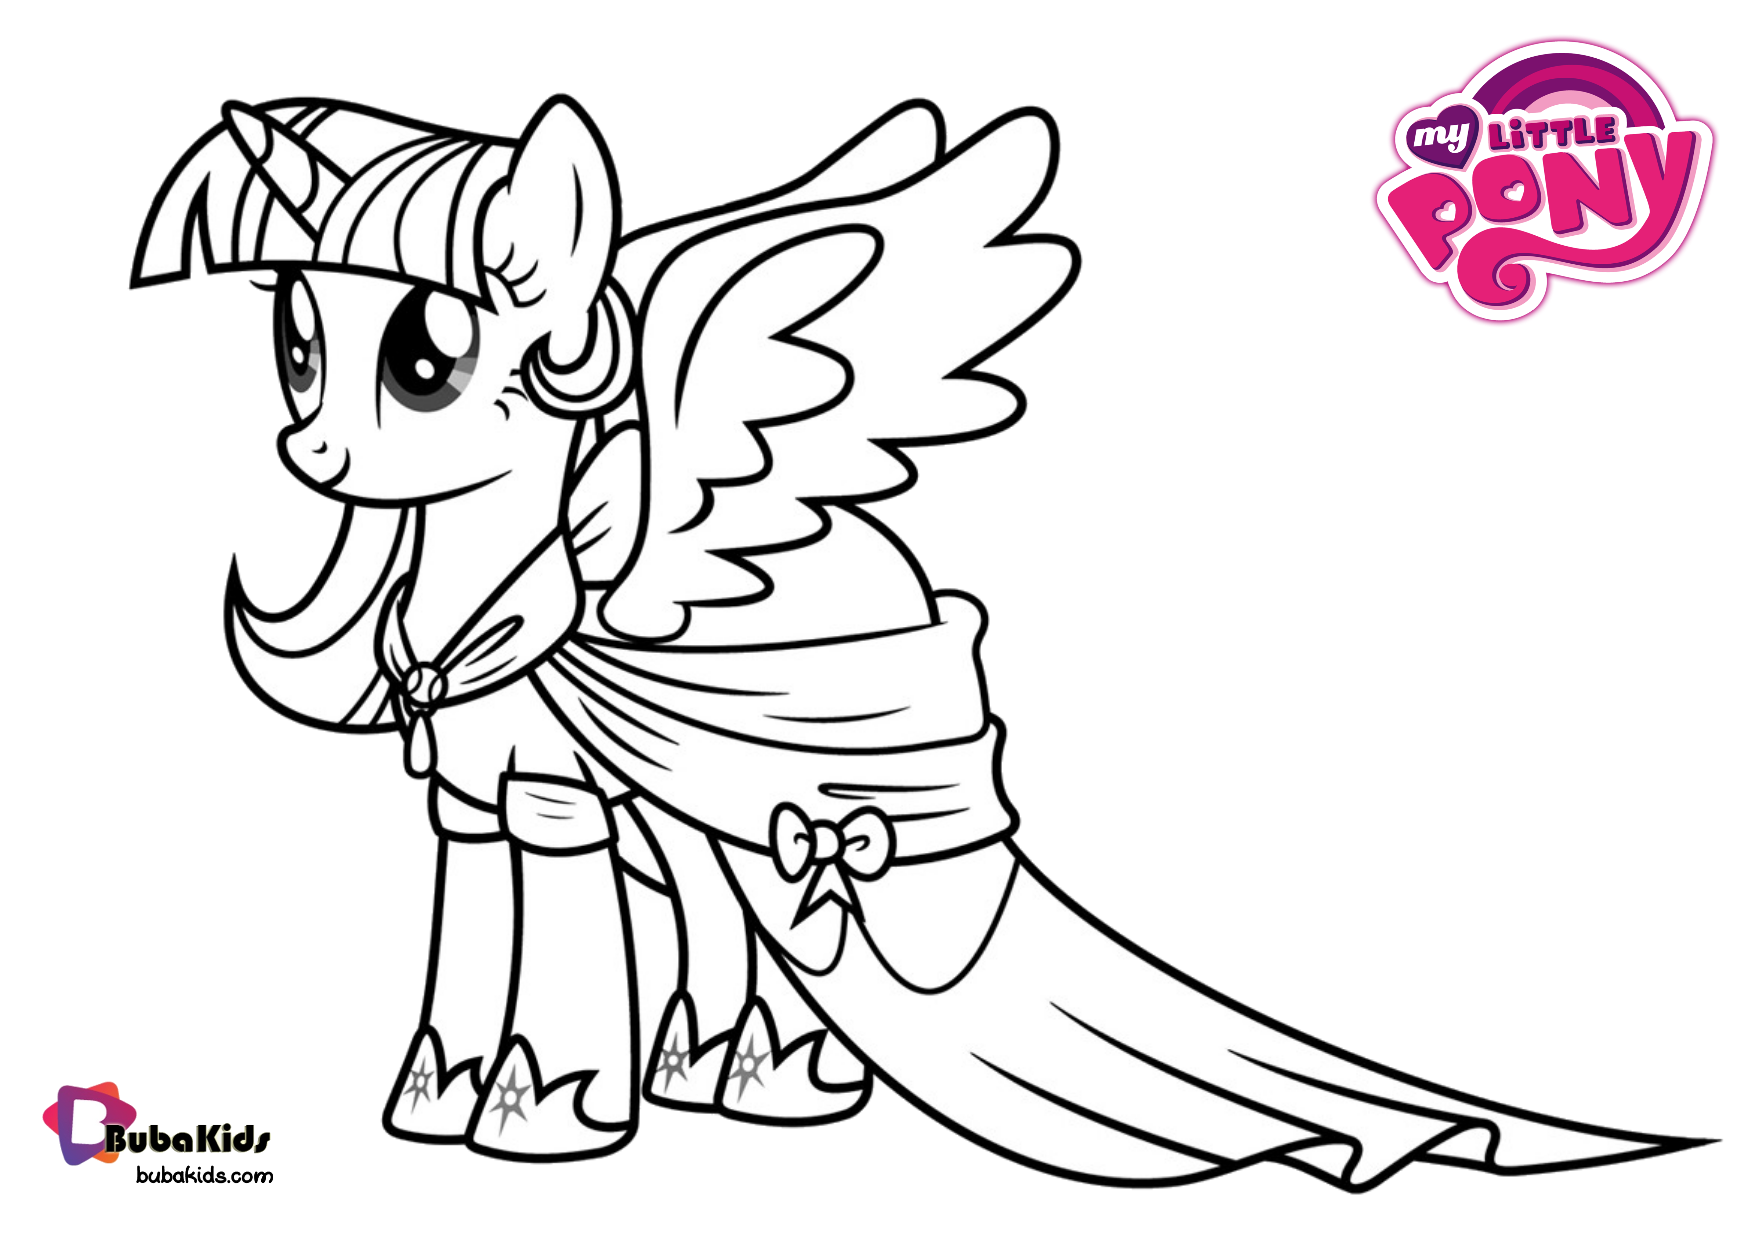 My little pony coloring pages Princess Luna. Wallpaper